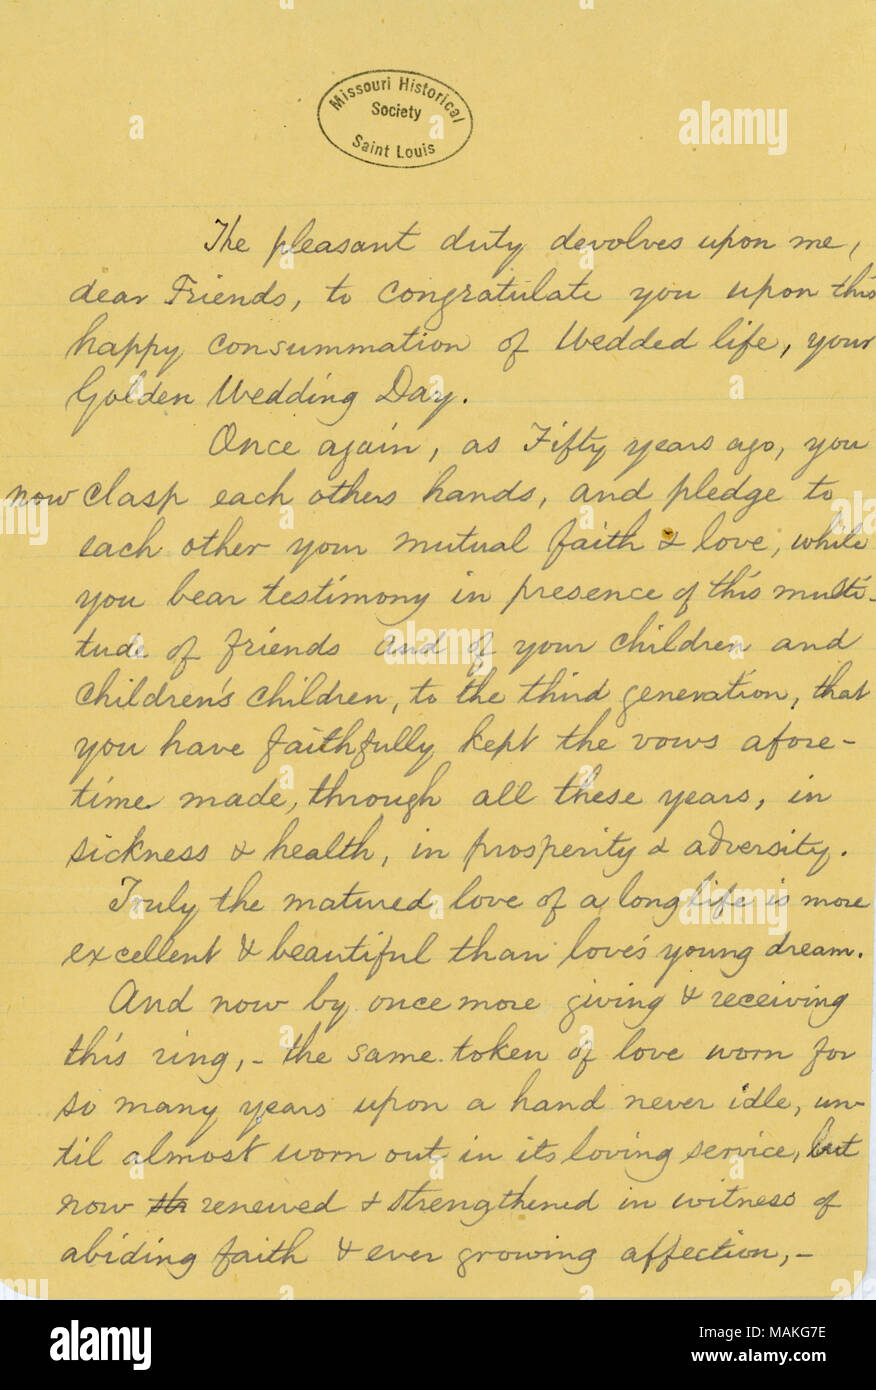 Contains Eliot S Blessing On The Occasion Of Her Parents Fiftieth